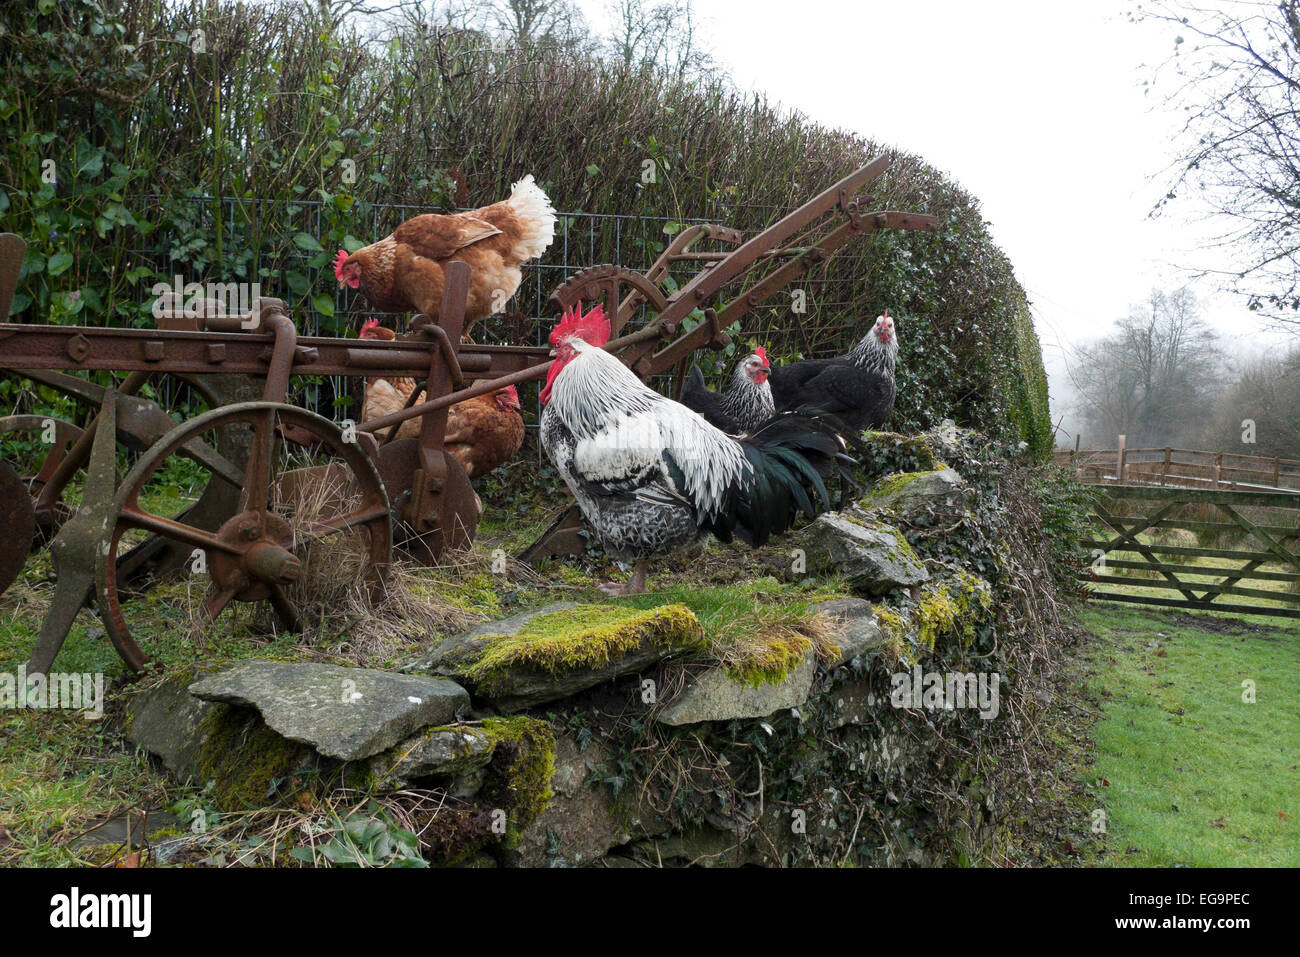 Carmarthenshire, Wales, UK. 20th February 2015.  Free range hens and cockerel sit on an old plough and stone wall - Stock Image